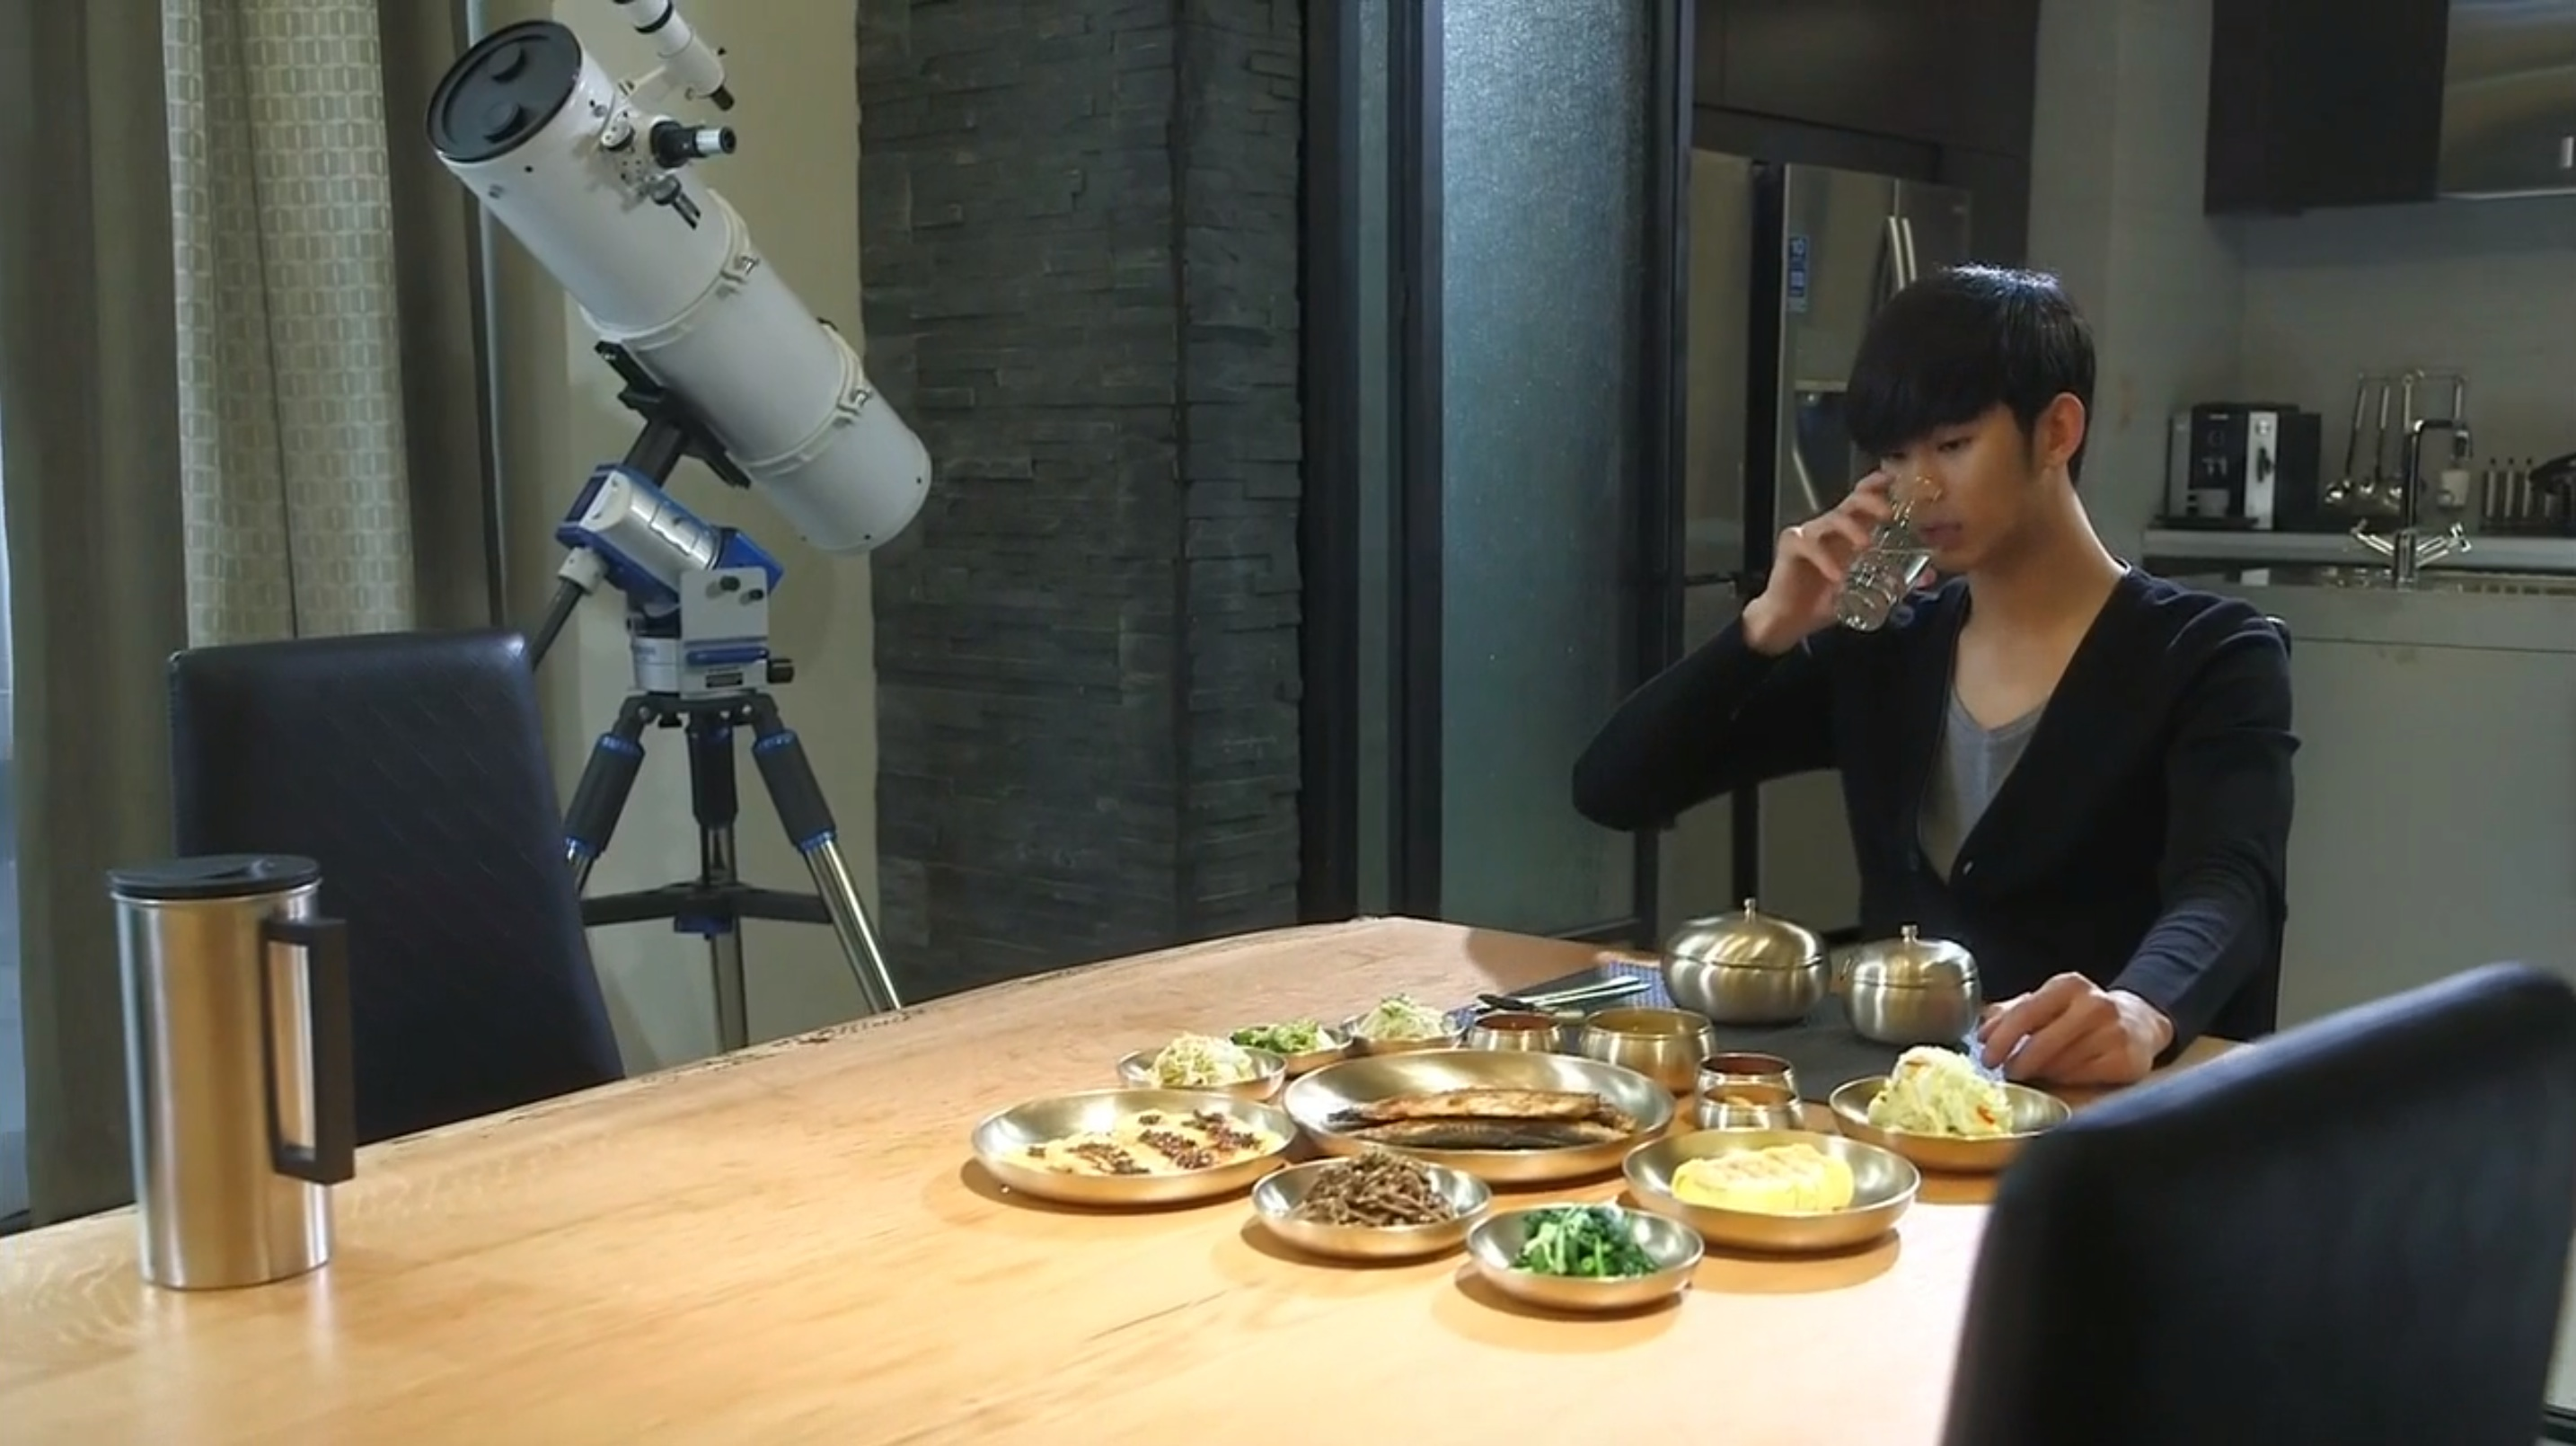 http://1.soompi.io/wp-content/uploads/2013/12/Eat-Alone.jpg